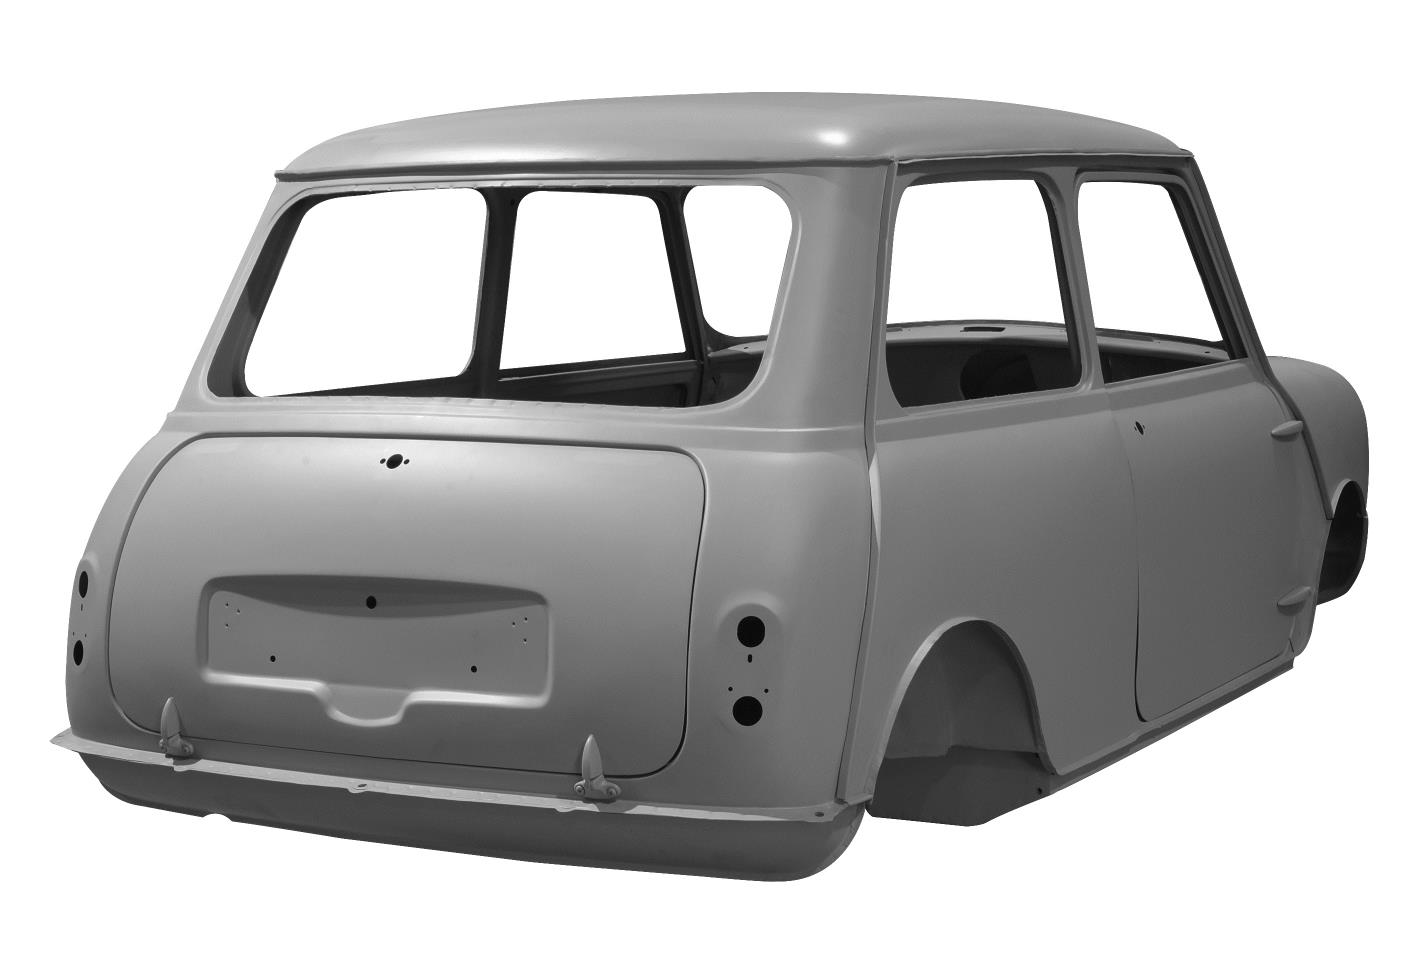 MK1 MINI REAR-THREEQUARTER